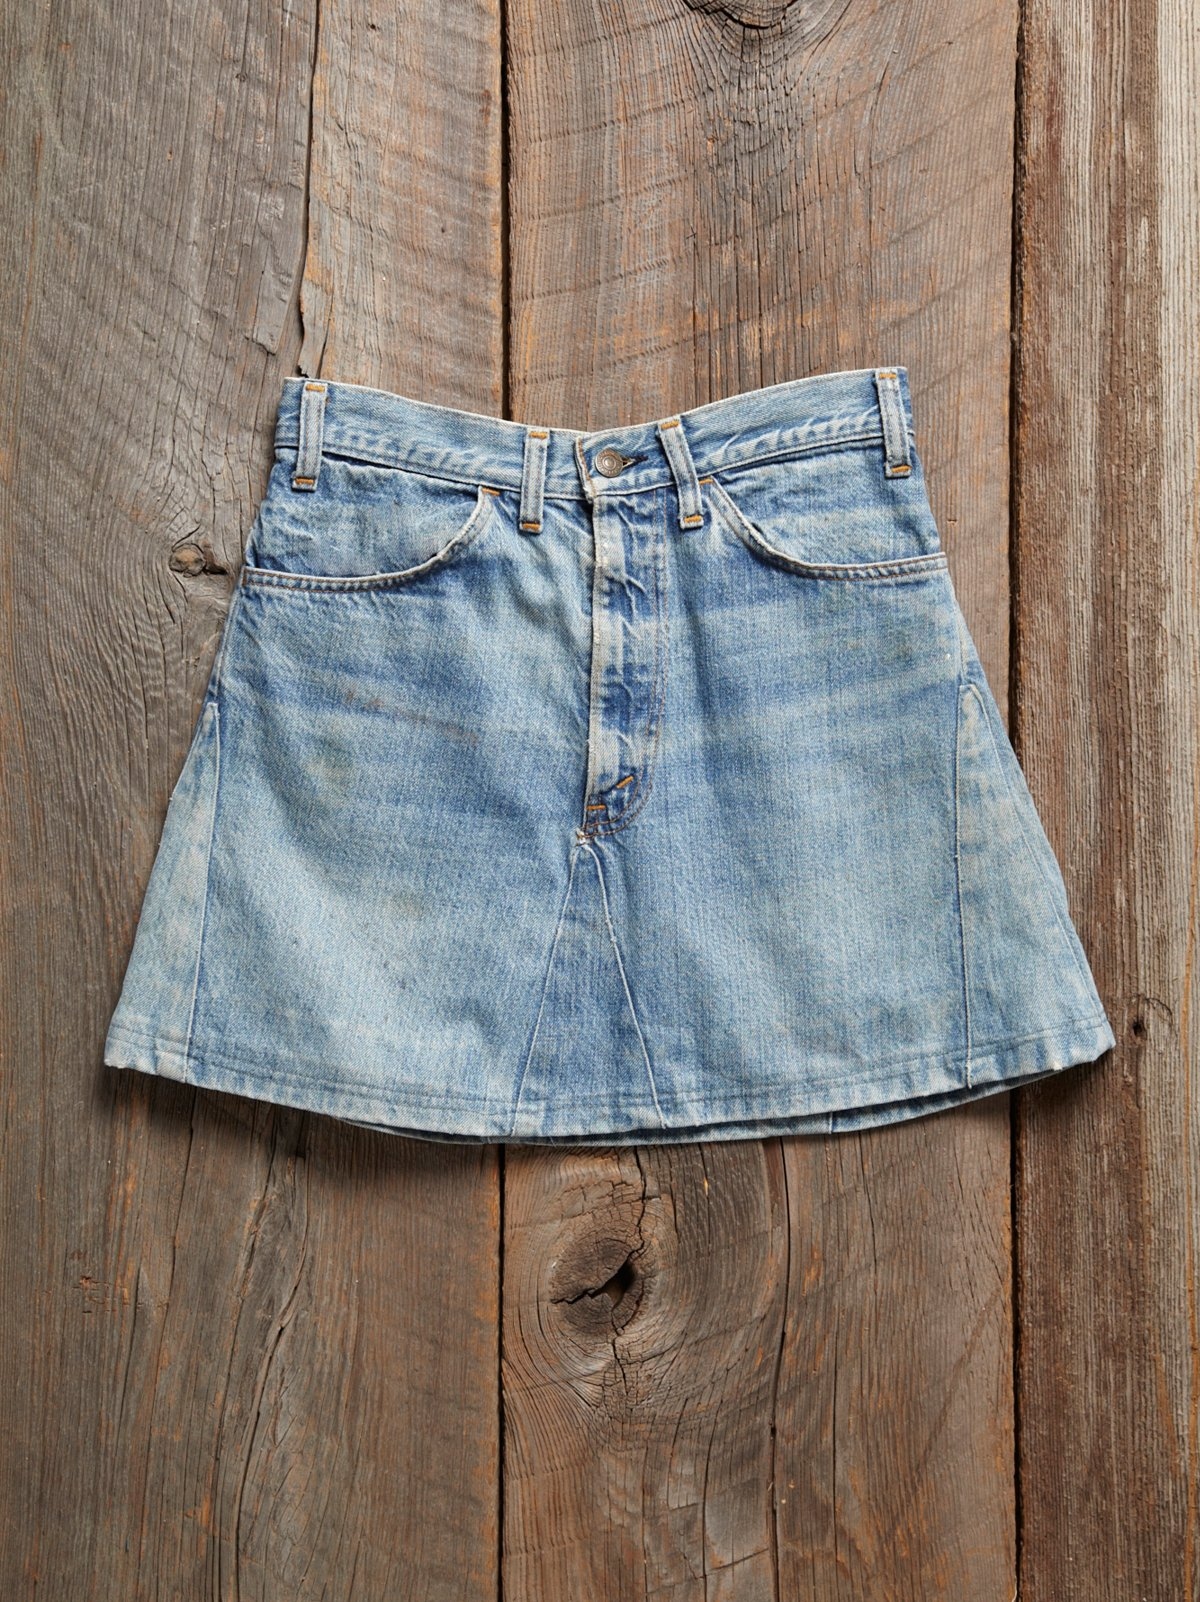 Vintage 1970s Levis Denim Mini Skirt